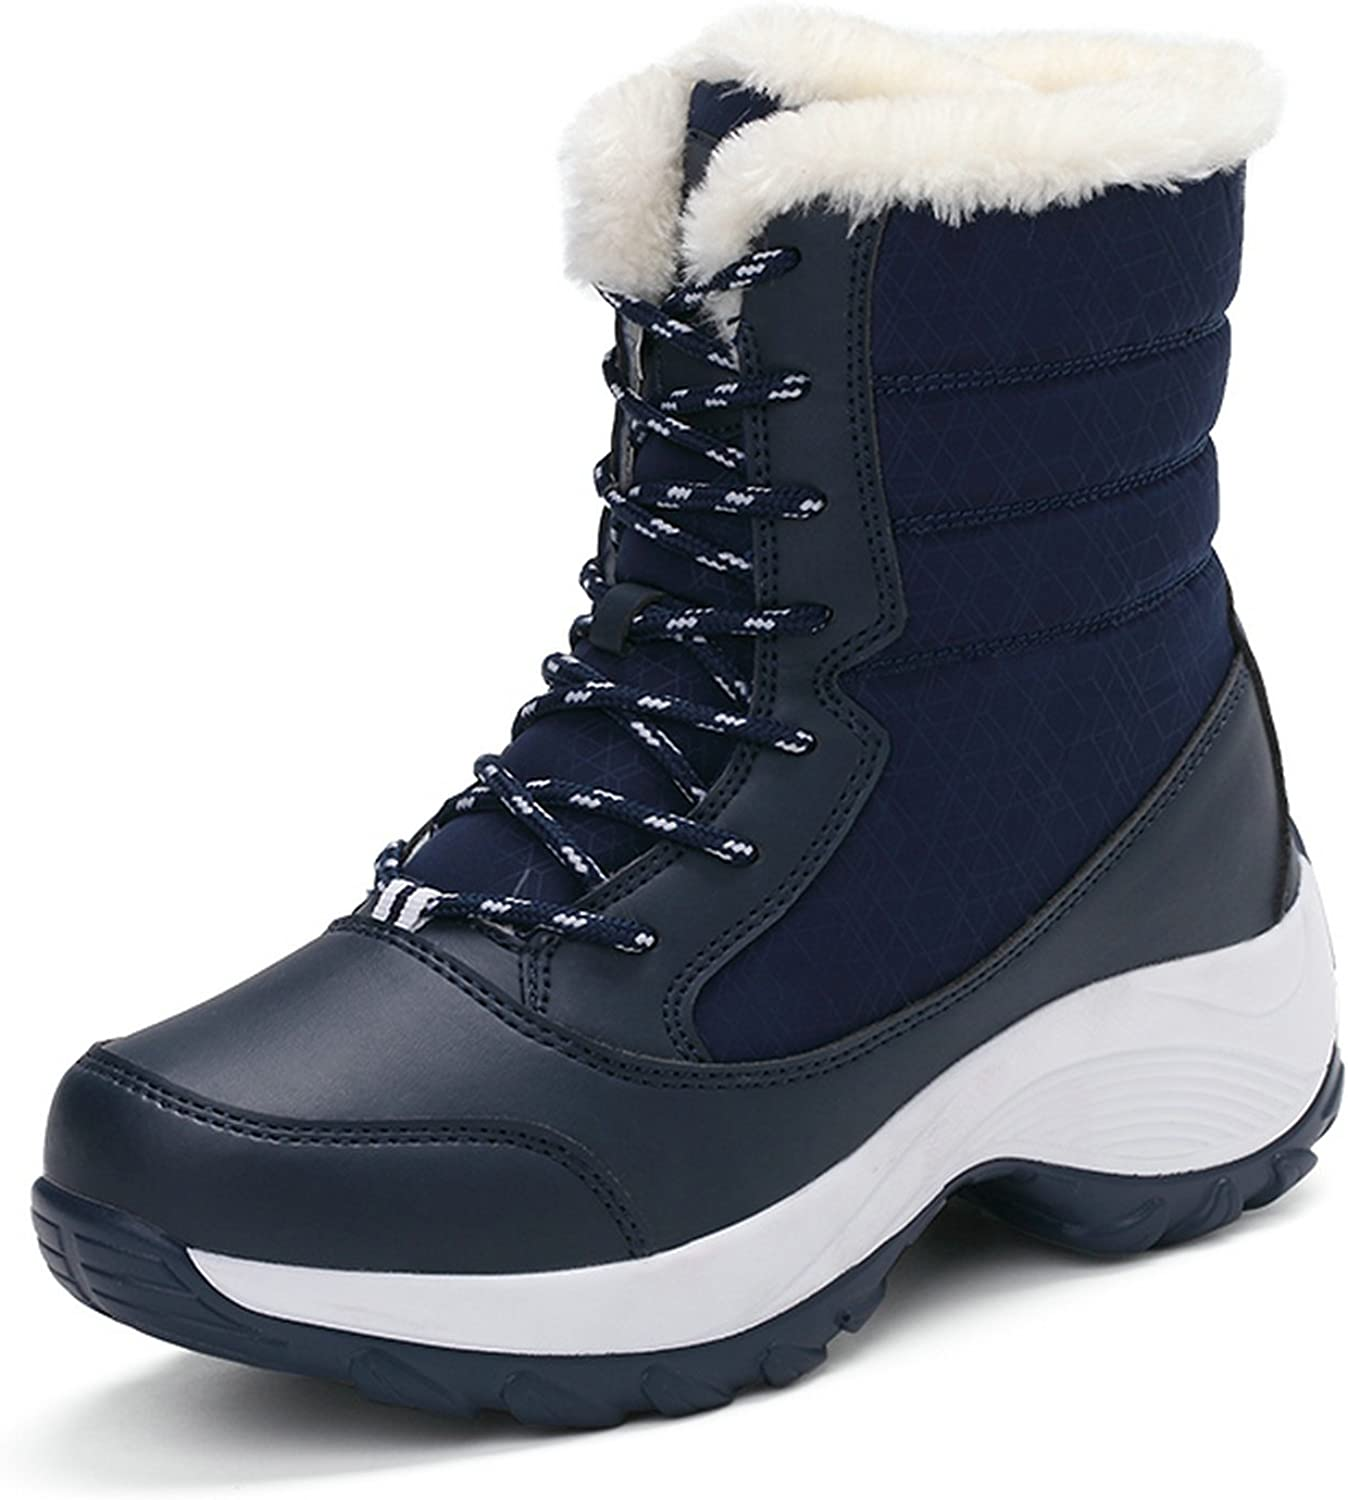 Oneone Women's Up Ankle Snow Boots